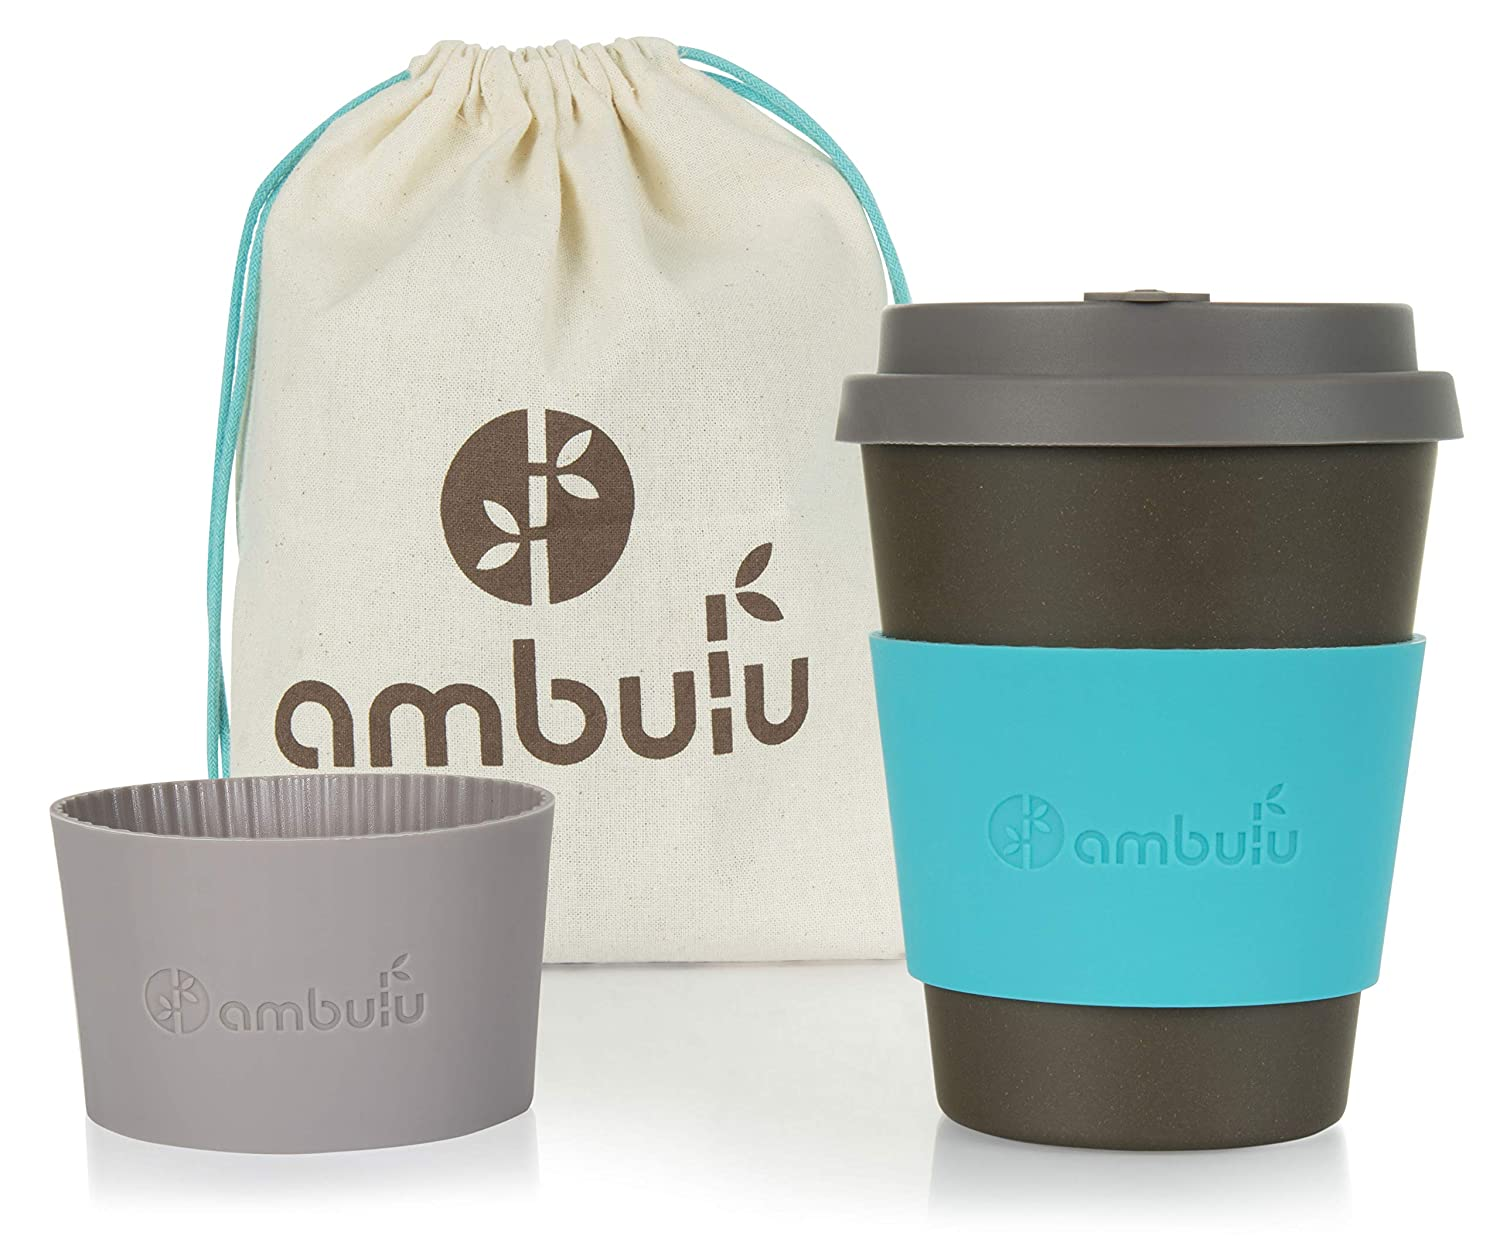 Reusable Coffee Cup for Travel To Go 12oz | Portable Bamboo Mug with Lid, 2 Sleeves, Carry Bag | Plastic and BPA Free | Dishwasher Safe Eco Cups 350ml